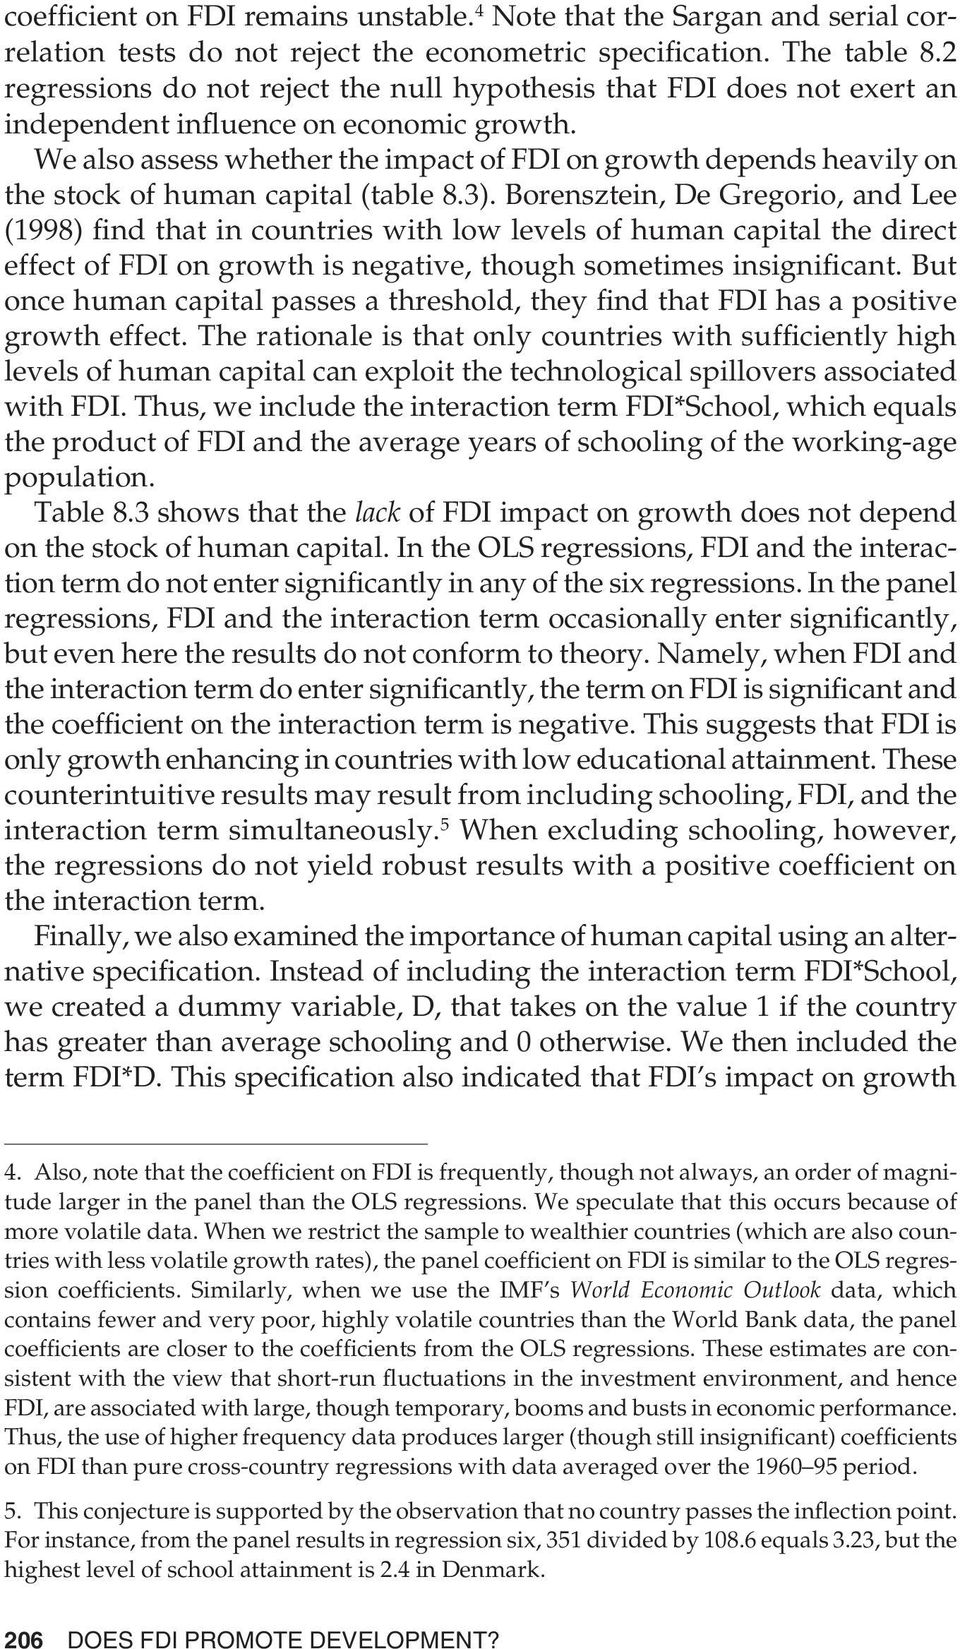 We also assess whether the impact of FDI on growth depends heavily on the stock of human capital (table 8.3).